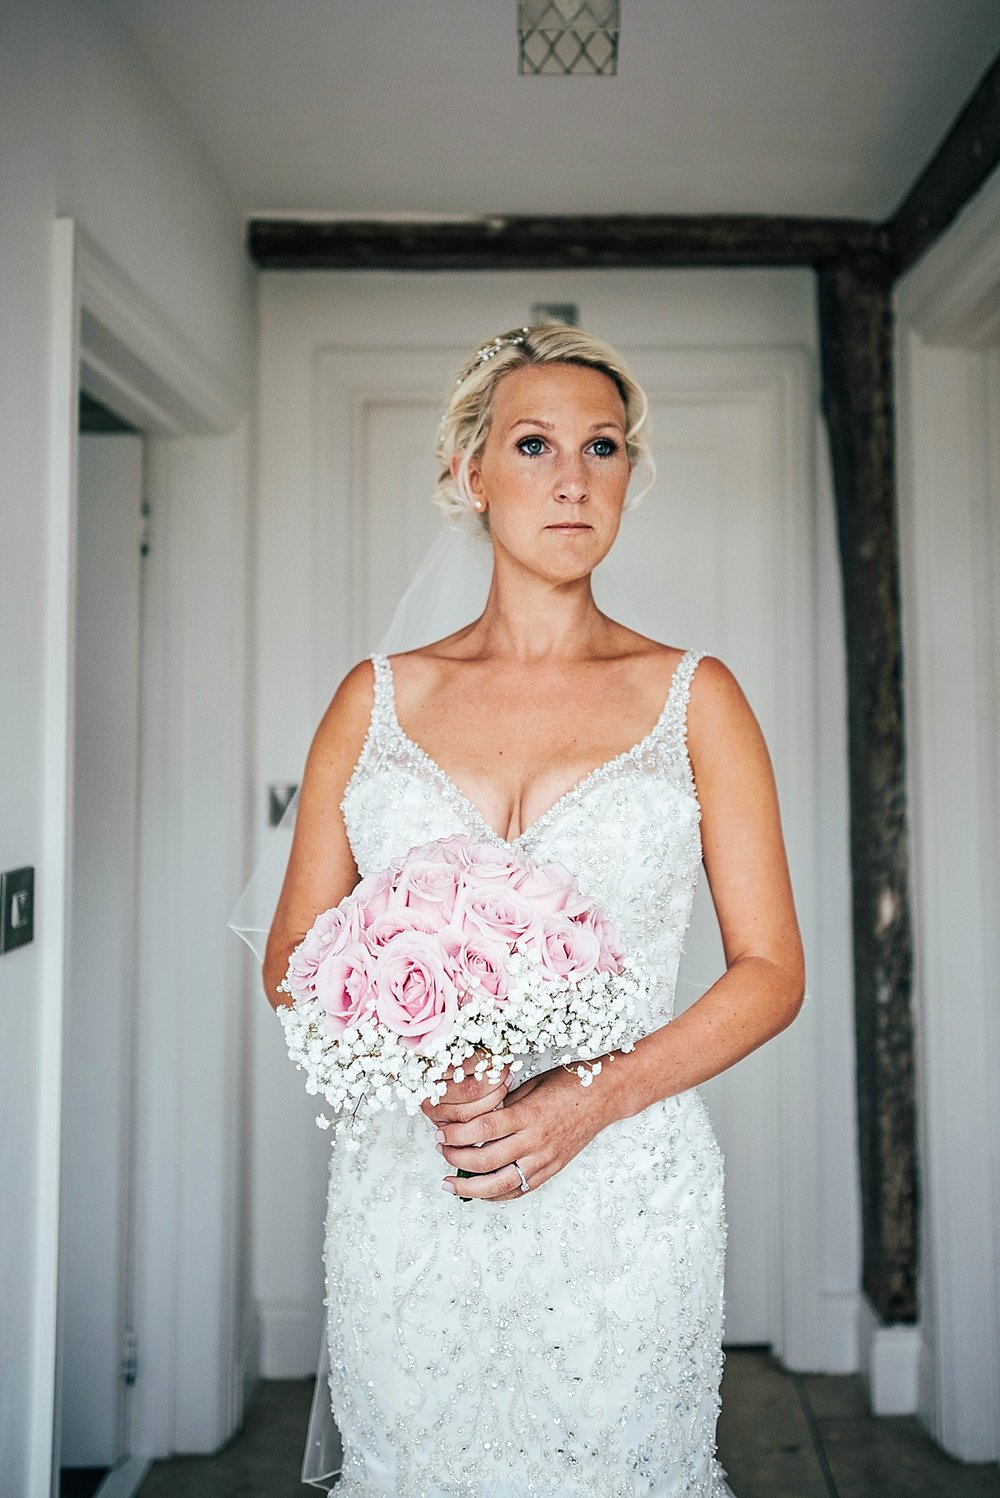 Bride Groom Essex Wedding Photographer Documentary Blake Hall Bride